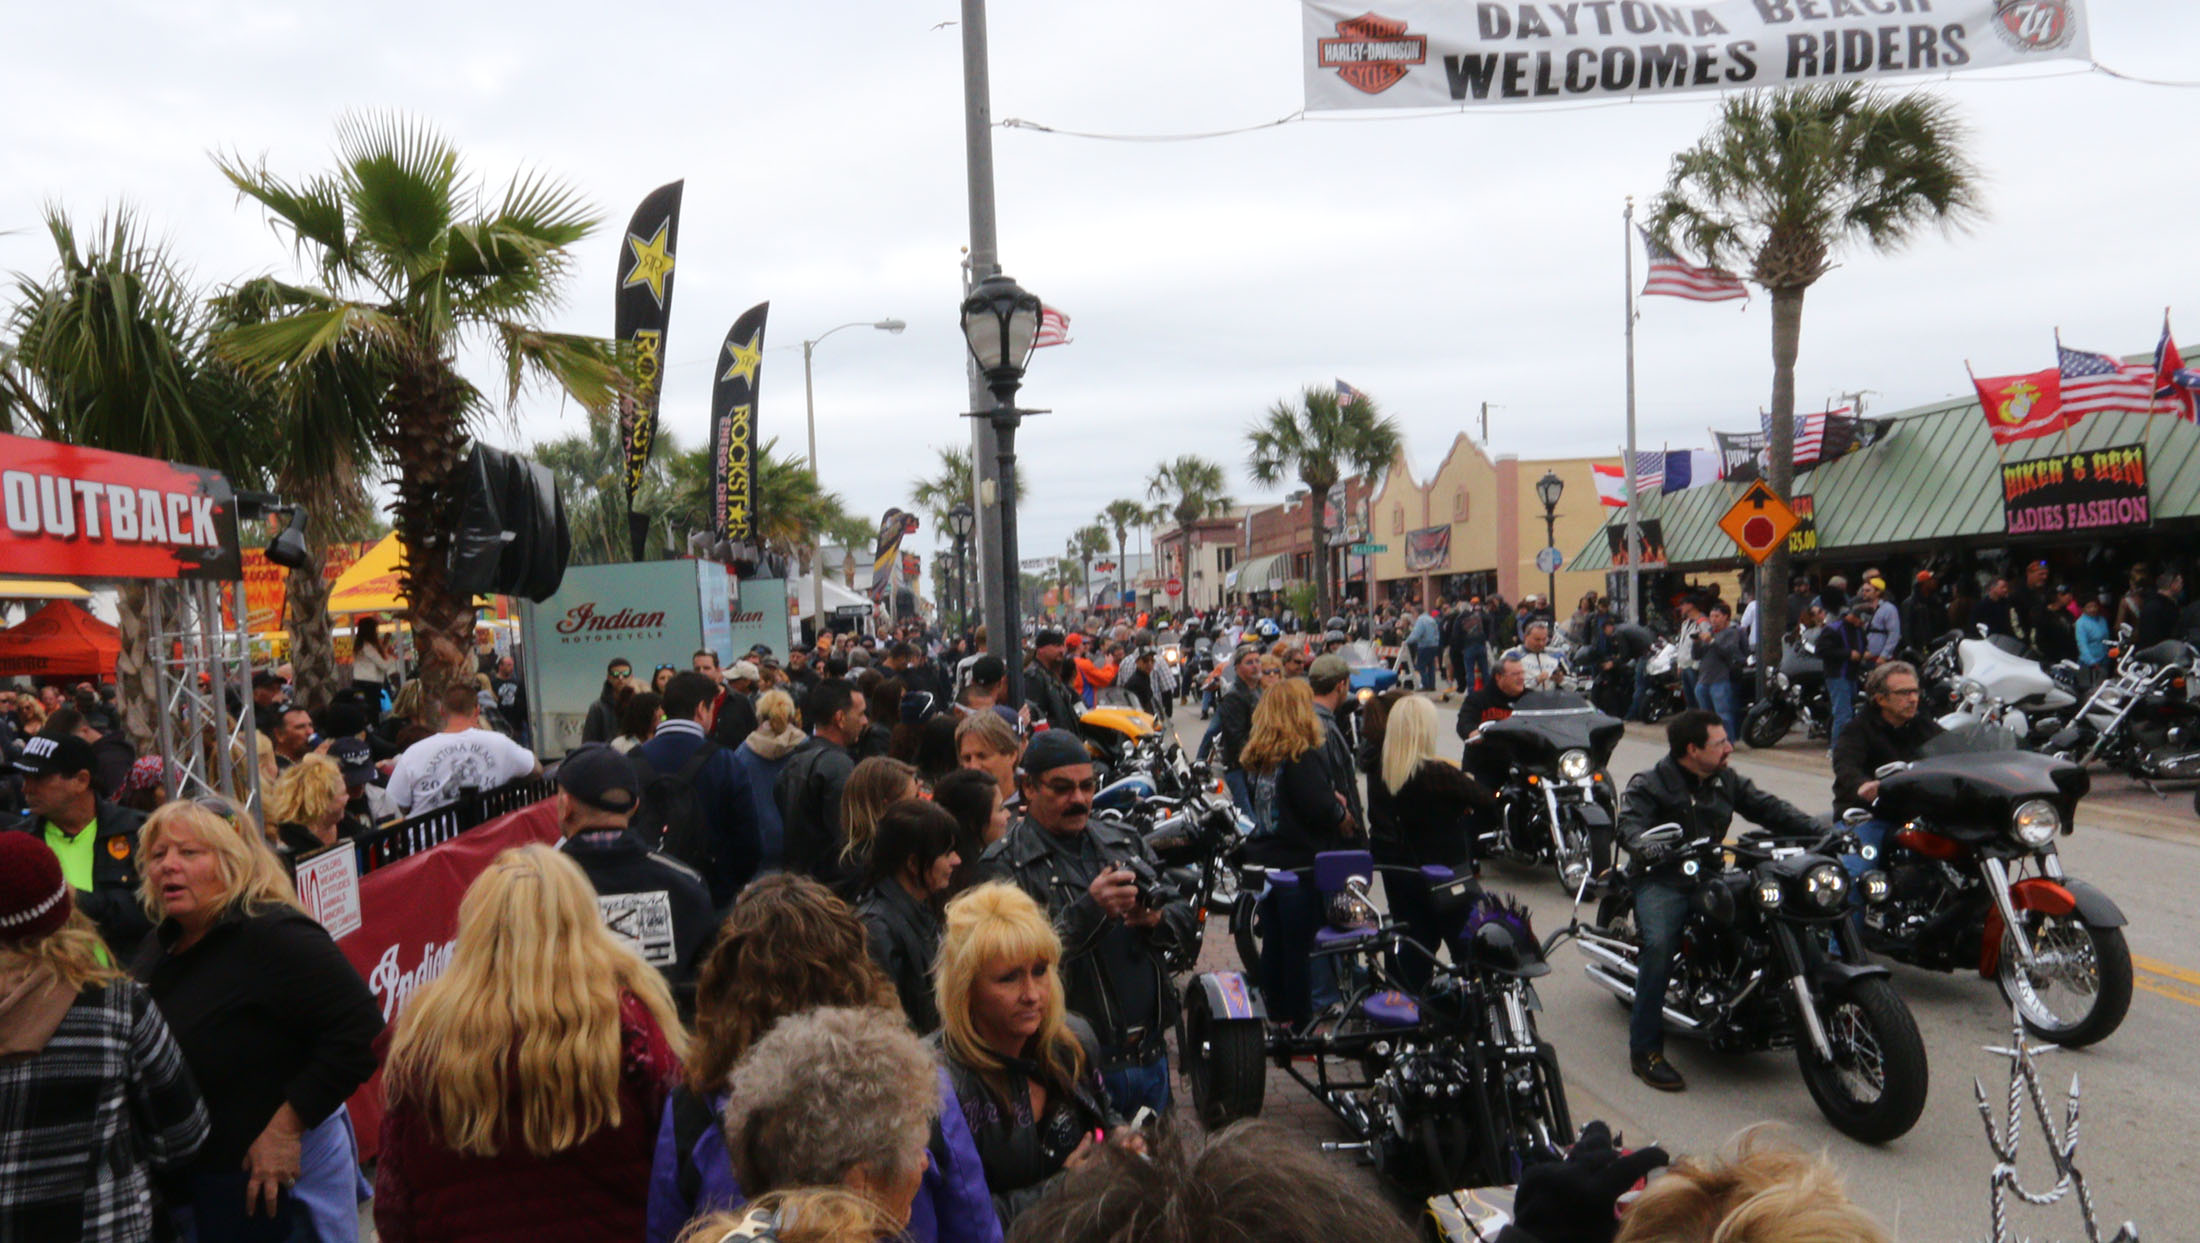 News-Journal/JIM TILLER   The Clydesdales prance west on Main Street  in Daytona Beach on day 2 of Bike Week 2015 Saturday, March 7, 2015.